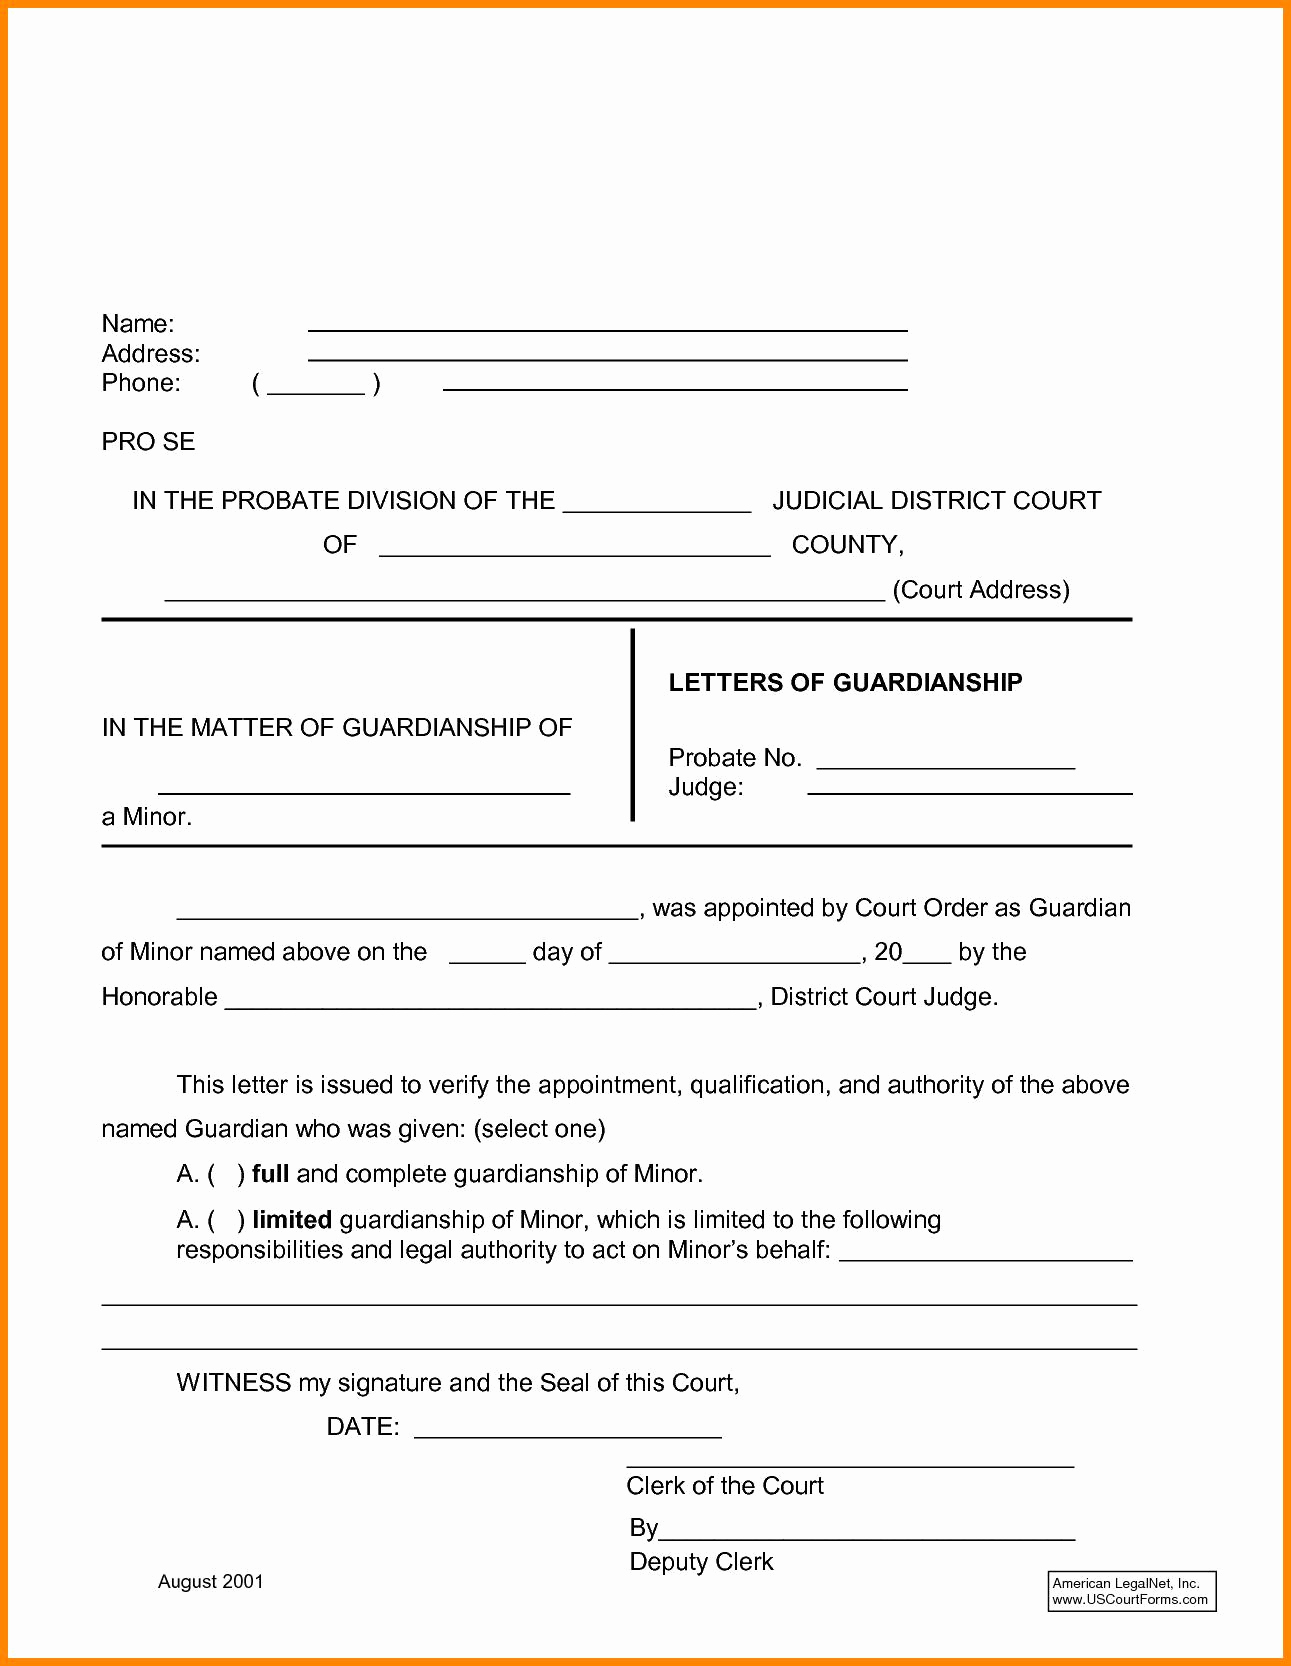 Temporary Custody Letter Template - Temporary Guardianship Agreement form Temporary Custody Letter